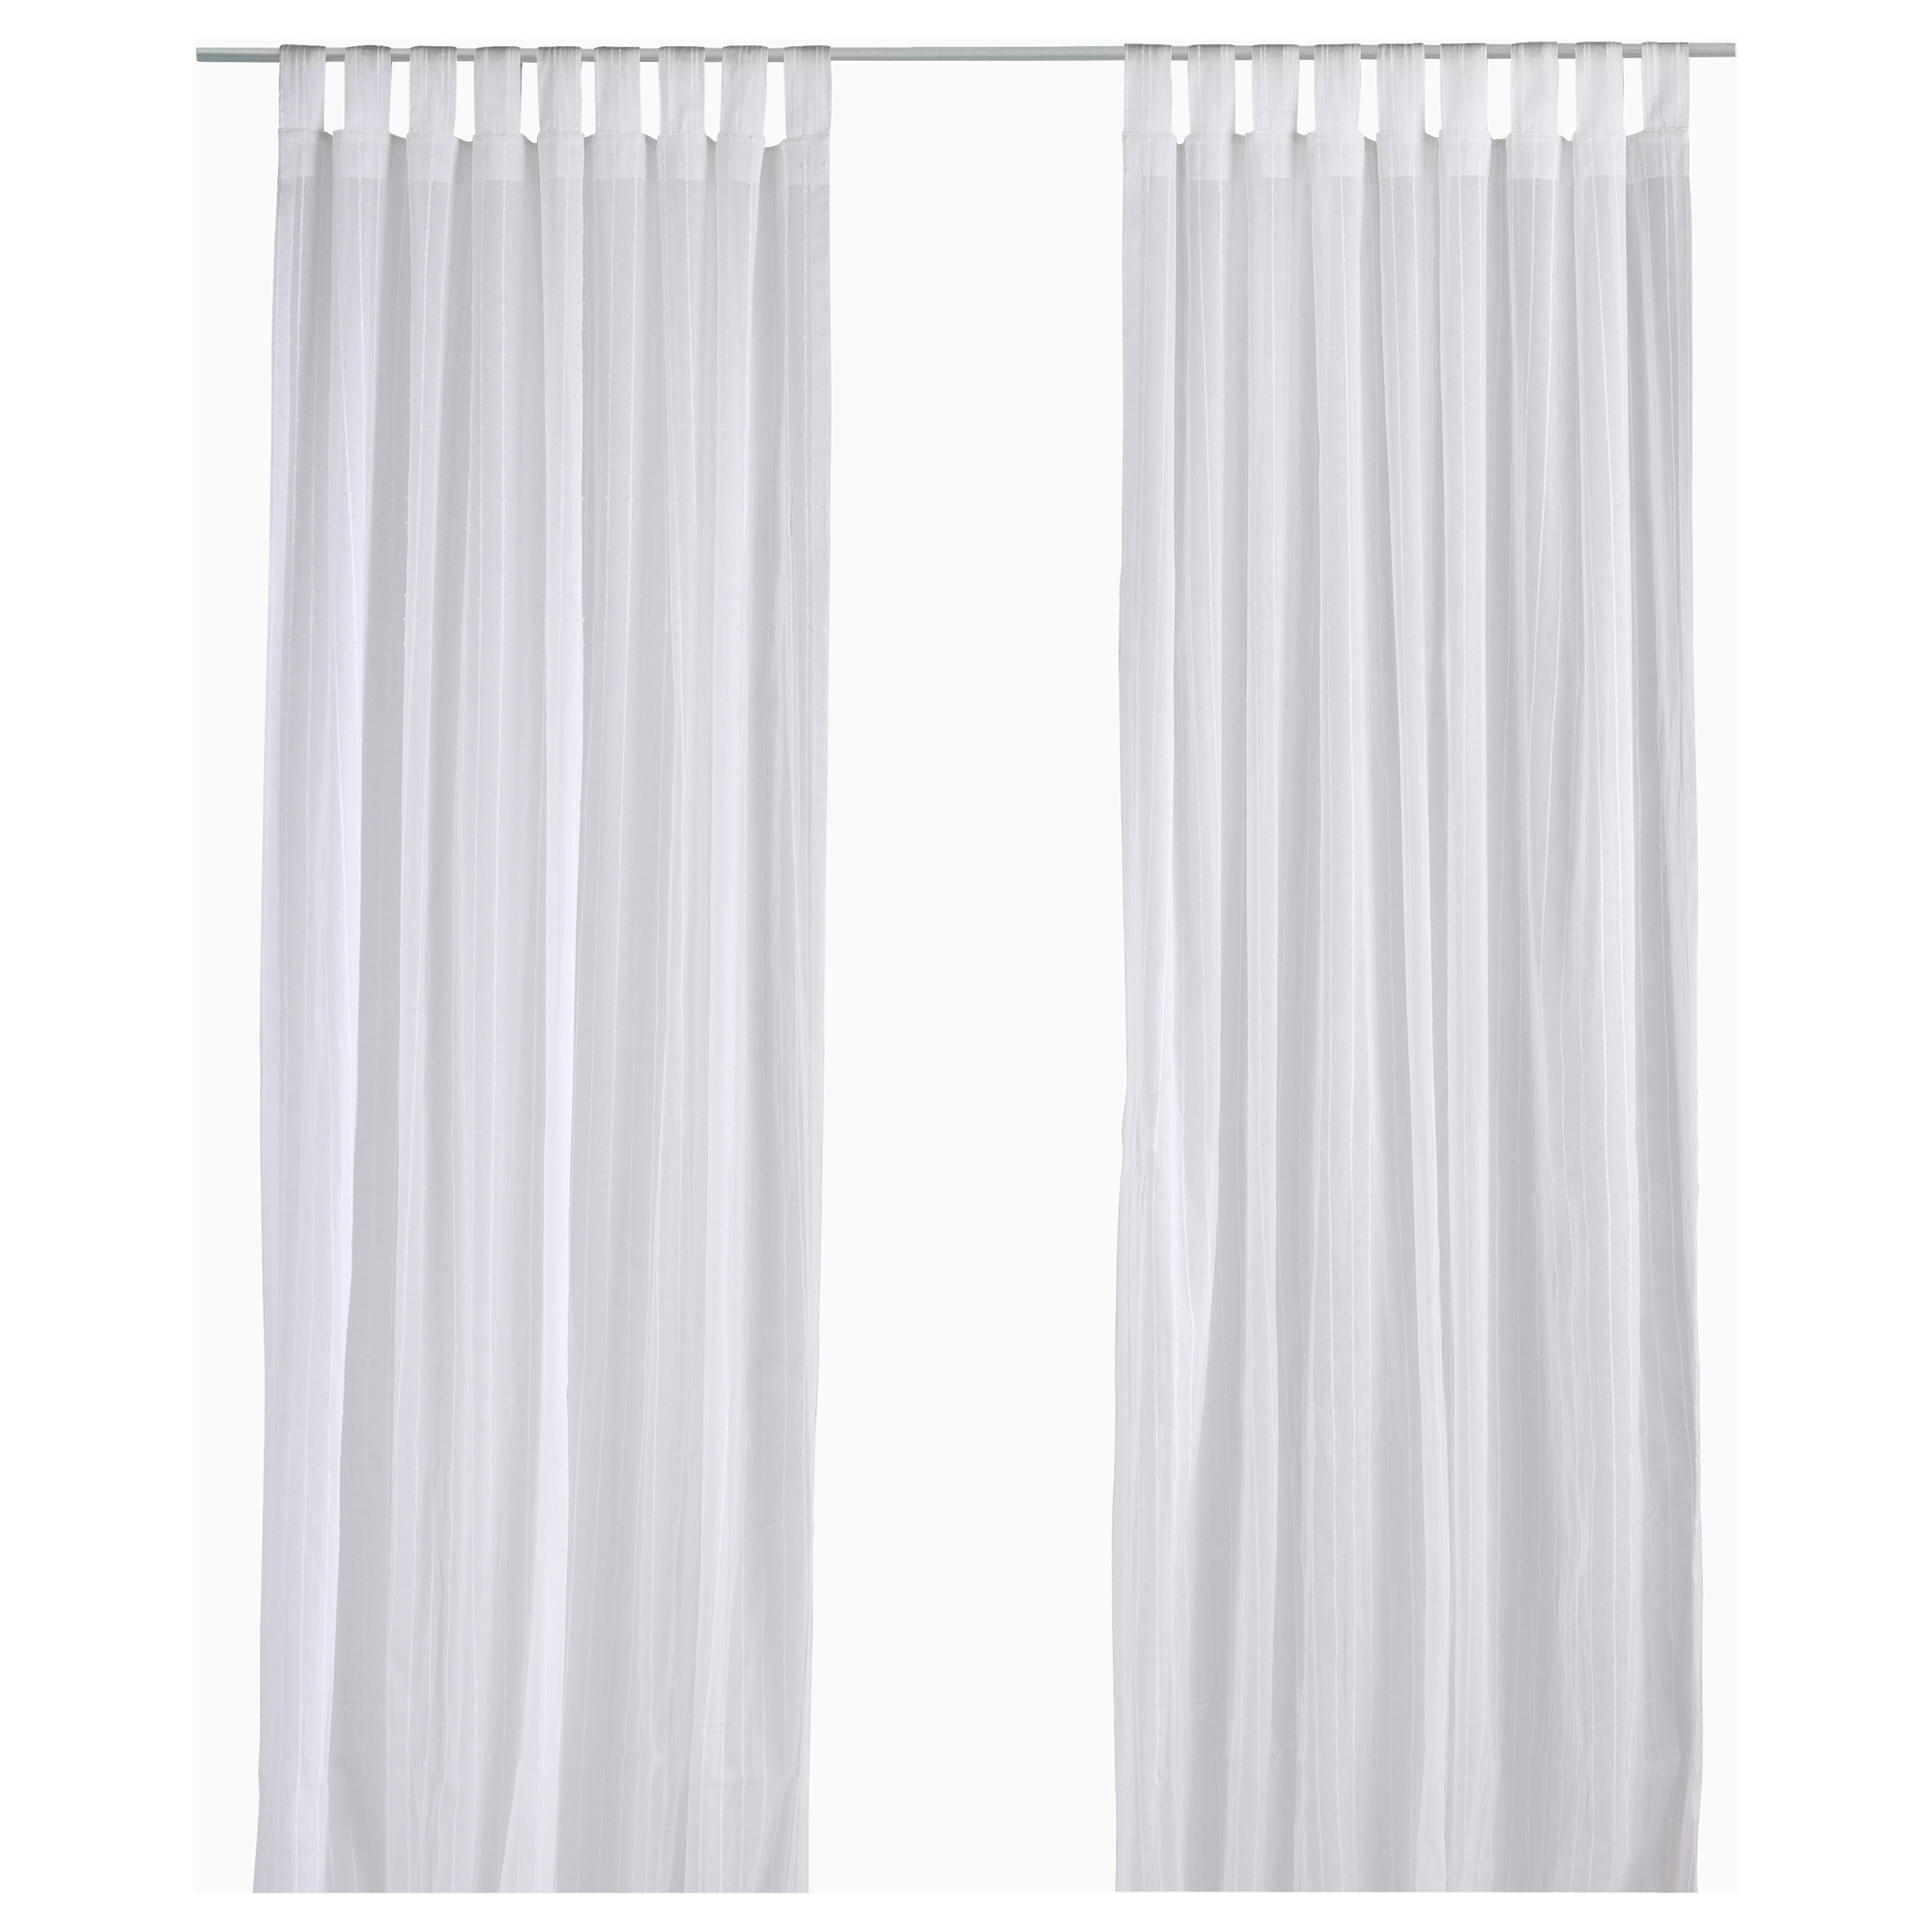 Best MATILDA Sheer curtains, 1 pair - IKEA white sheer curtains